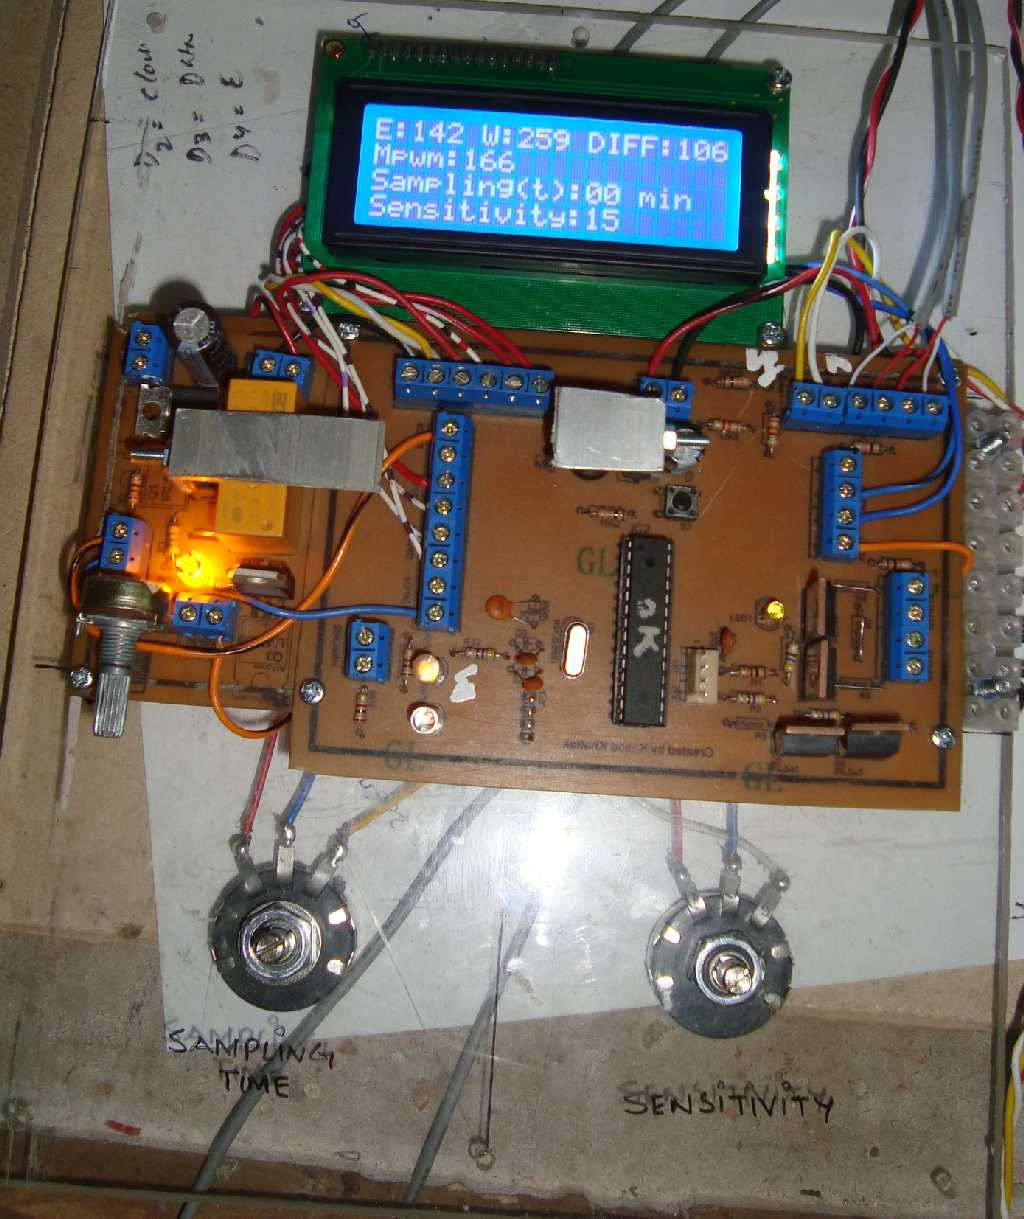 Green Energy Adventure By Mechanical Engineer Winding Up The Wiring Solar Panel Box At 2359 Hrs Is Programmed To Move Toward East And Stopped Limit Switch